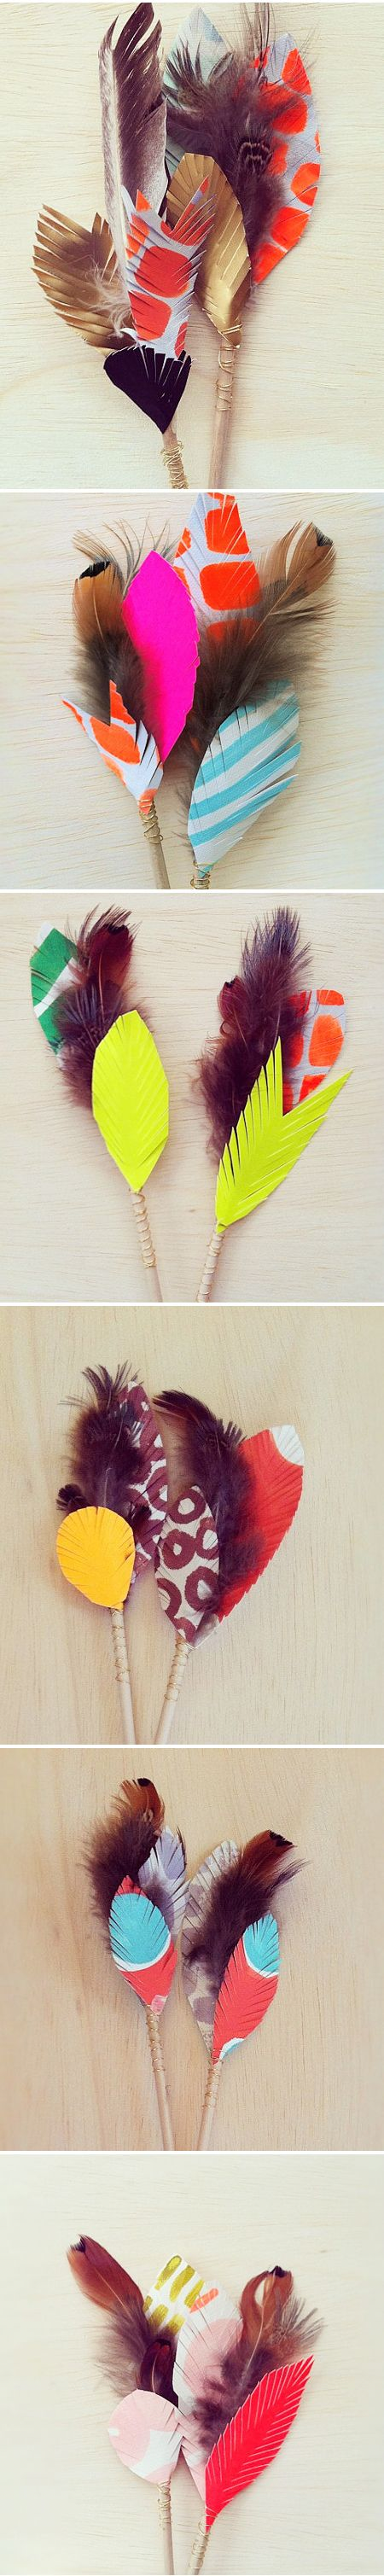 paper feathers.... / wonderful color combos.: Boutonniere Inspiration, Paper Feathers, Color Combos, Painted Feathers, Art, Britt Bass